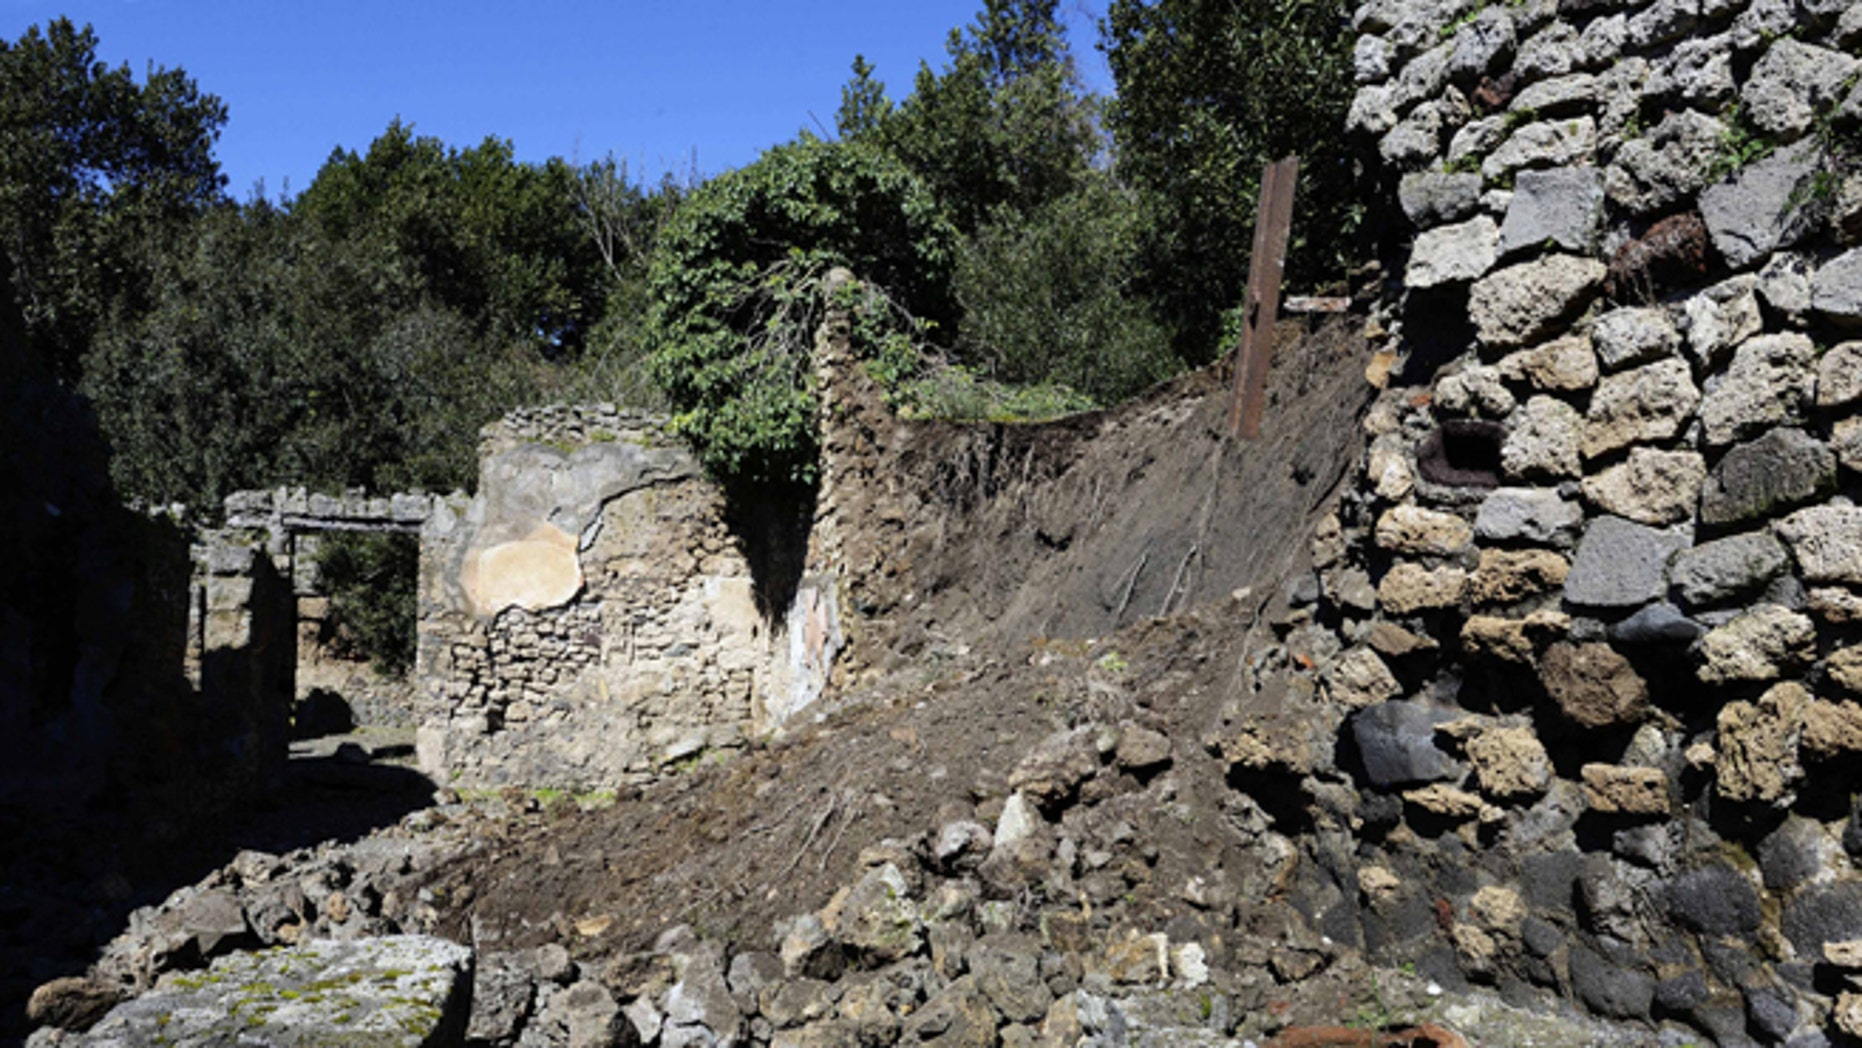 Bricks and rocks are seen on the ground after a section of wall around an ancient shop collapsed in Pompeii as a consequence of a rainstorm, Monday, March 3, 2014.